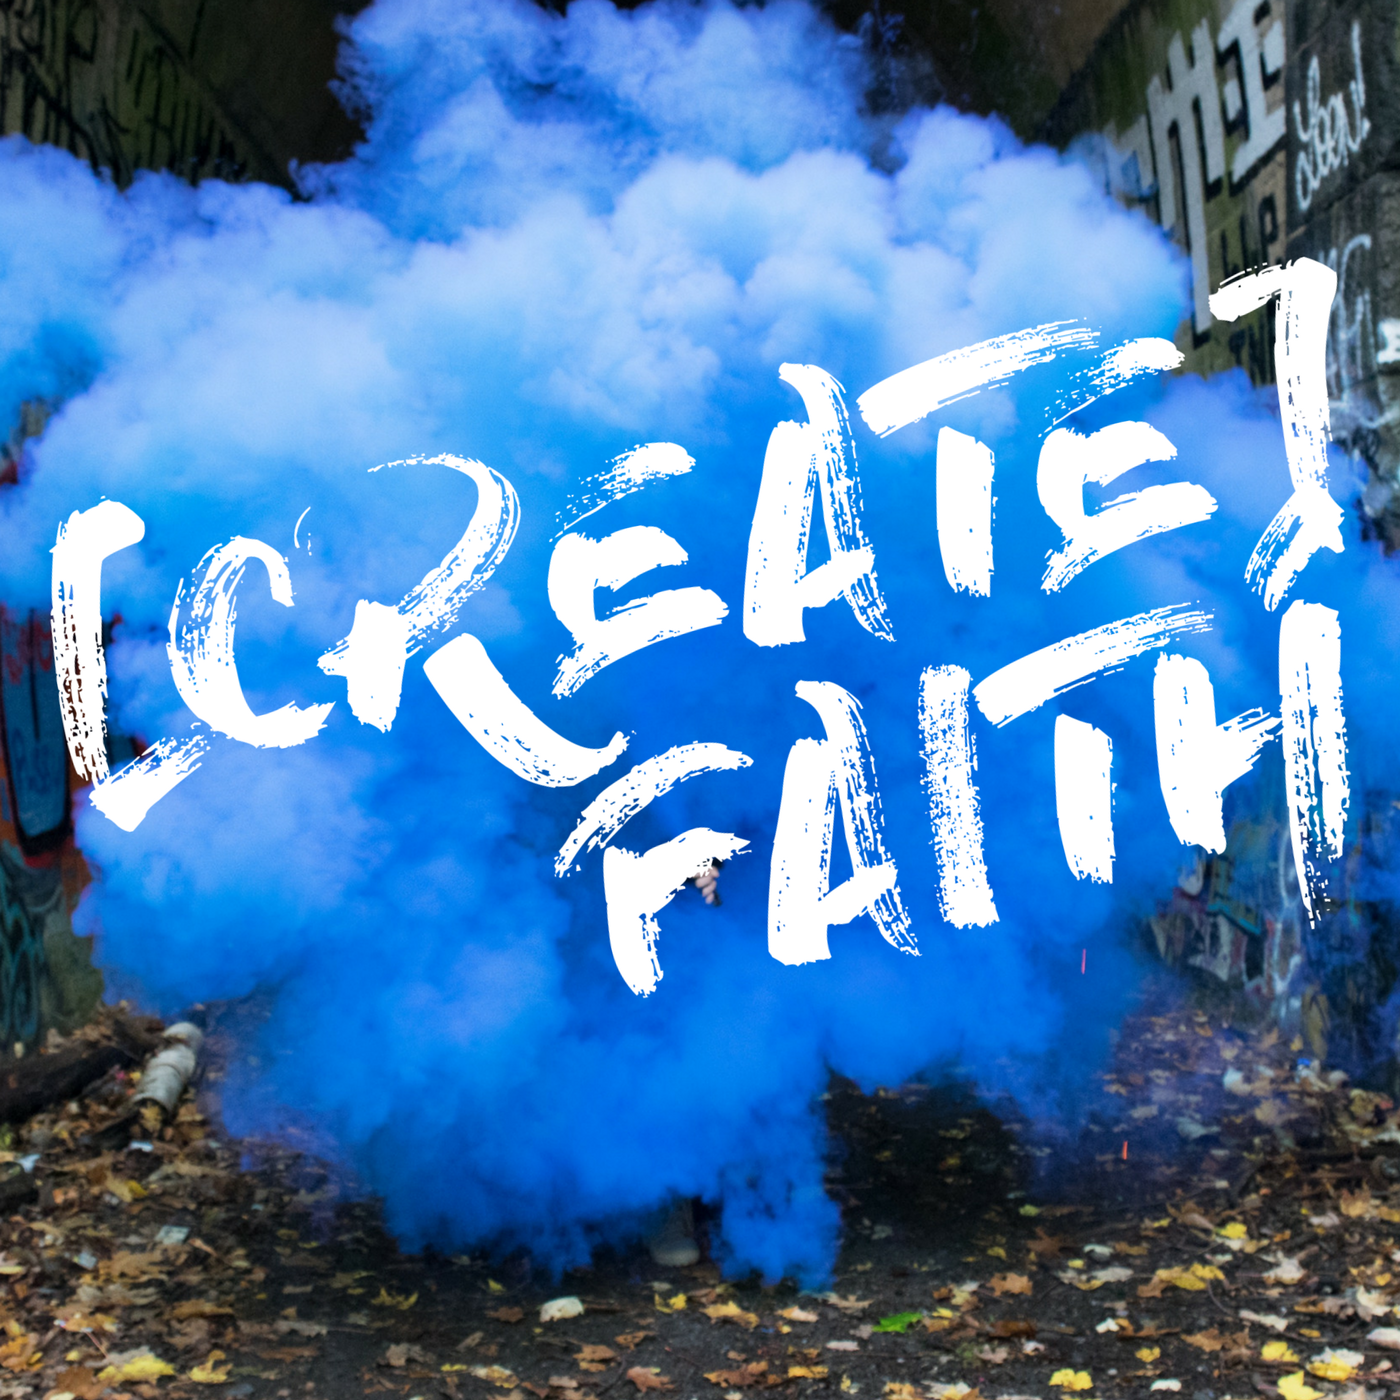 [Create] Faith show art